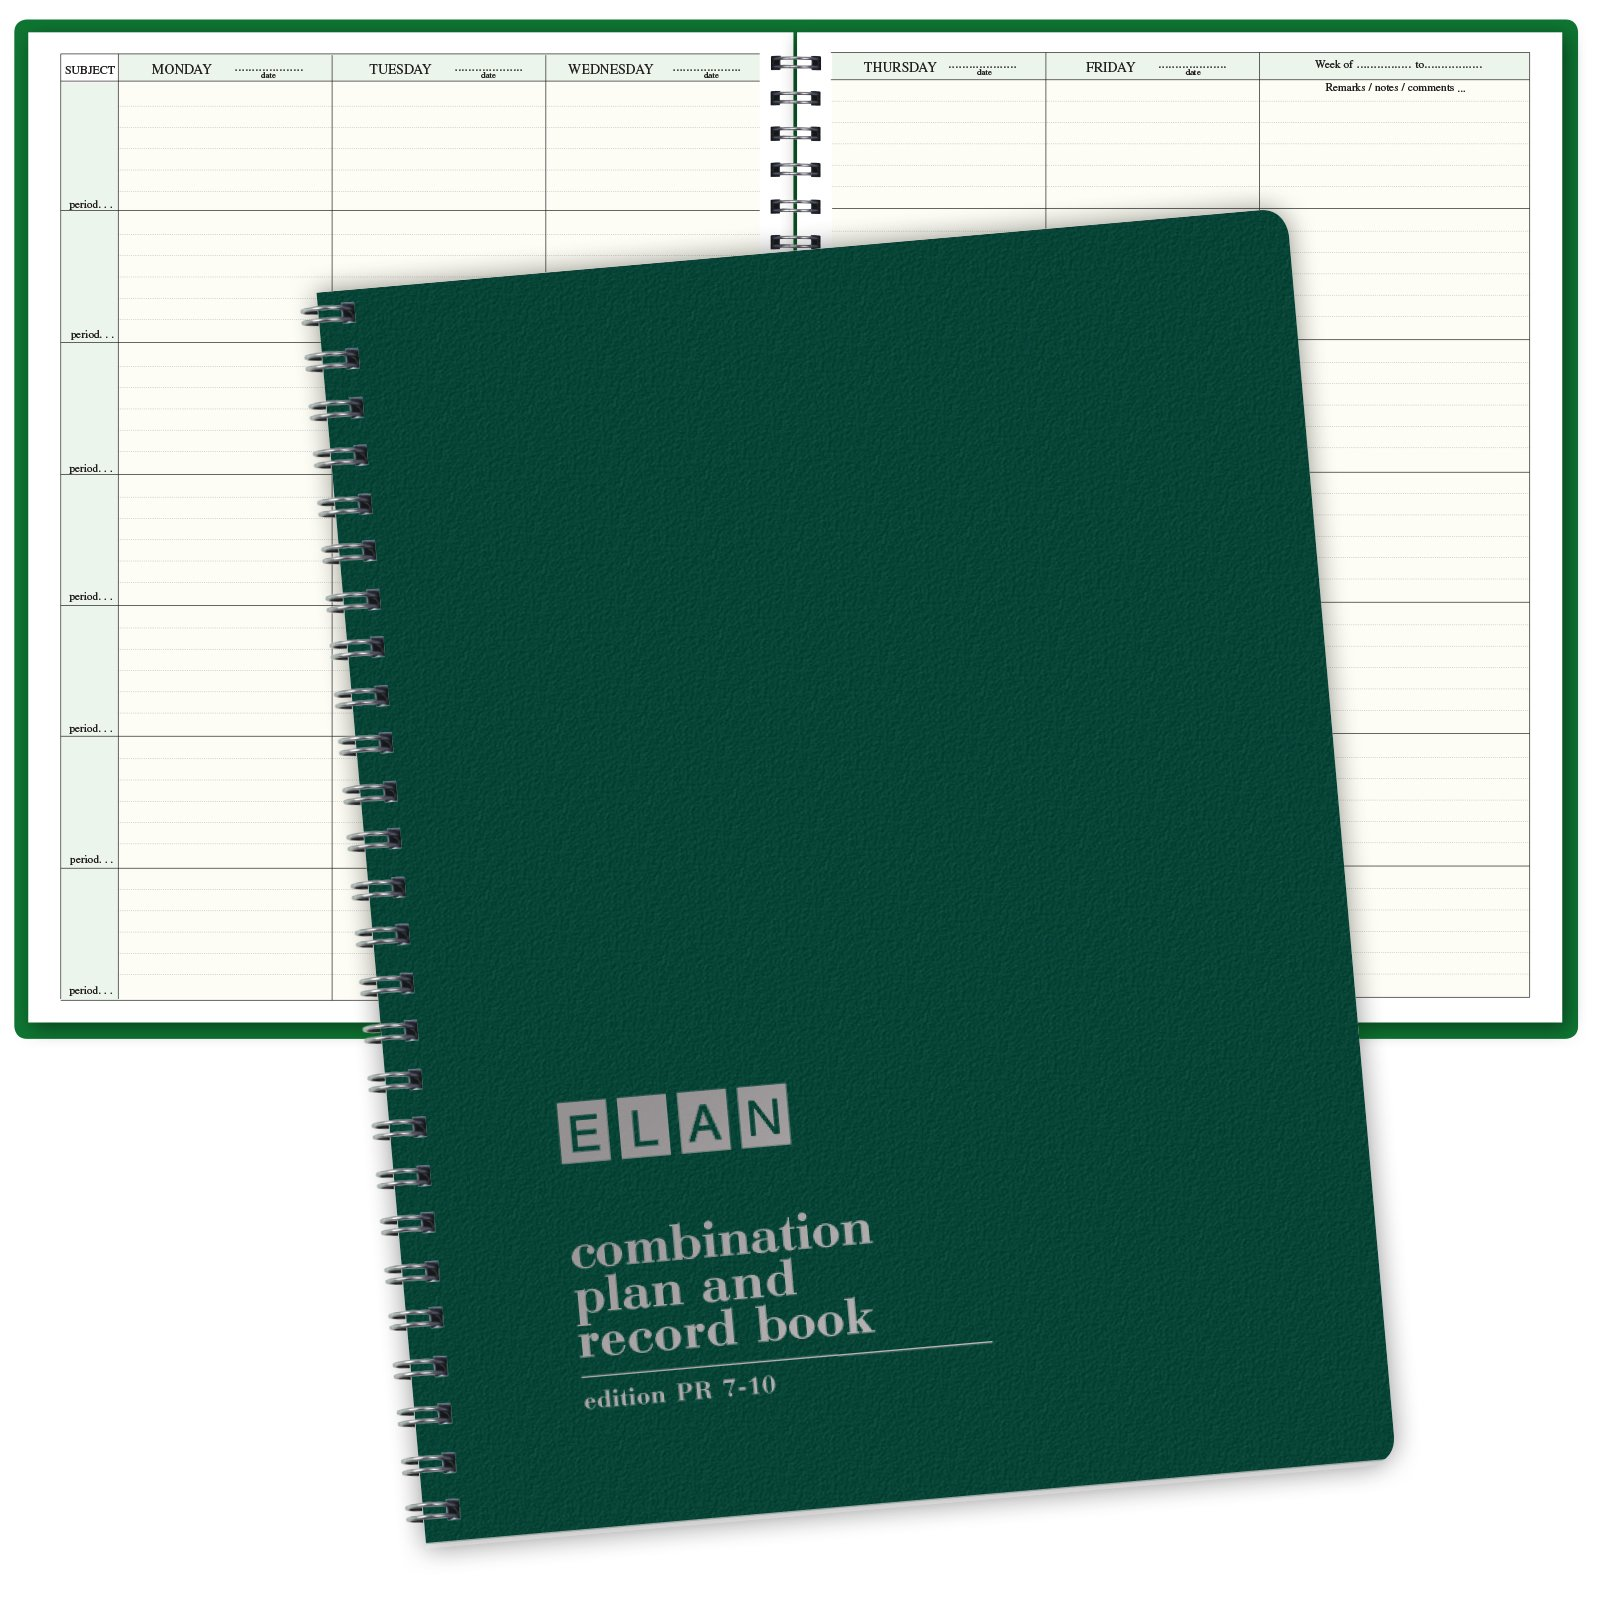 Combination Plan and Record Book: One efficient 8-1/2'' x 11'' book for lesson plans and grades combines W101 and R1010 (PR7-10)